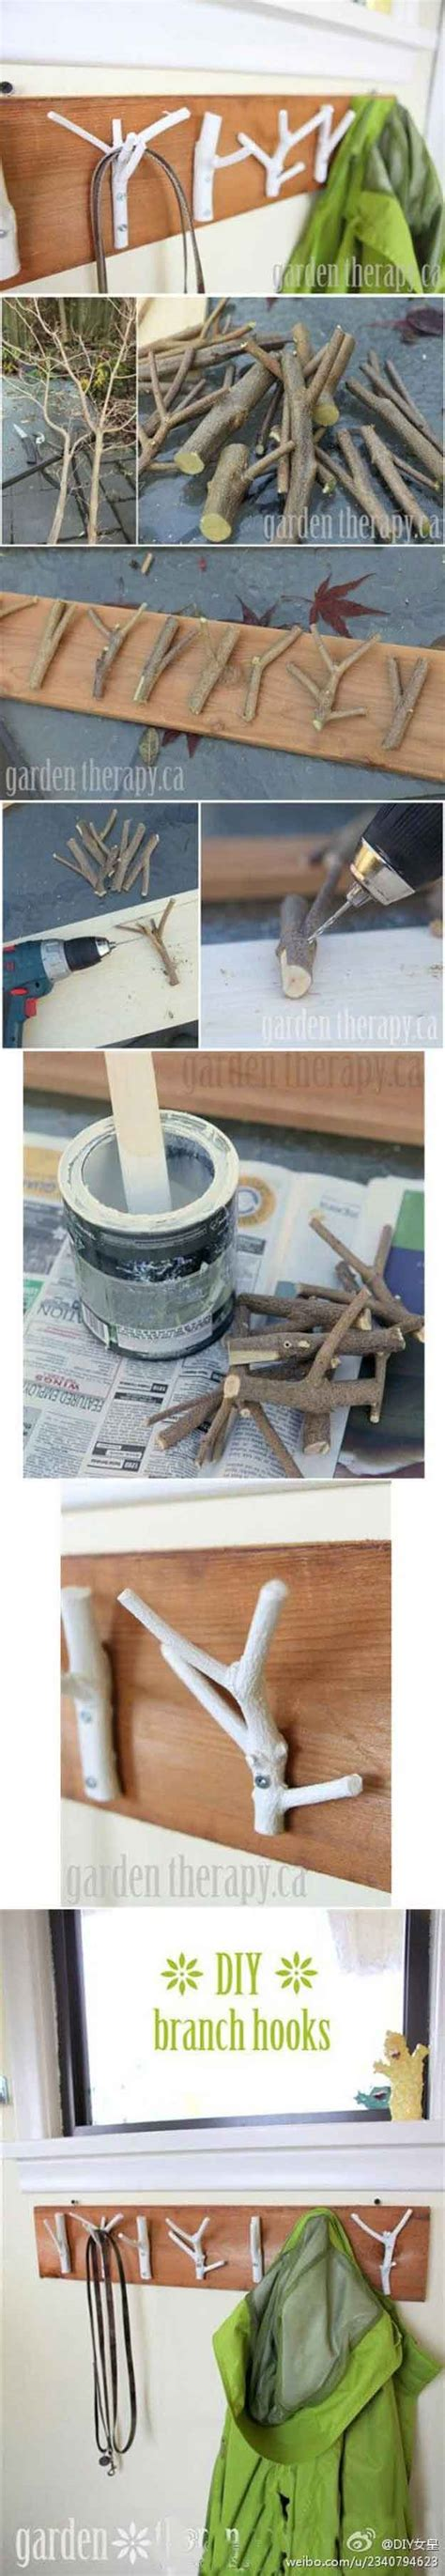 20 Boy Room Decor Ideas A Craft In Your Day Easy Diy Room Decor Ideas For Boys Diy Ready